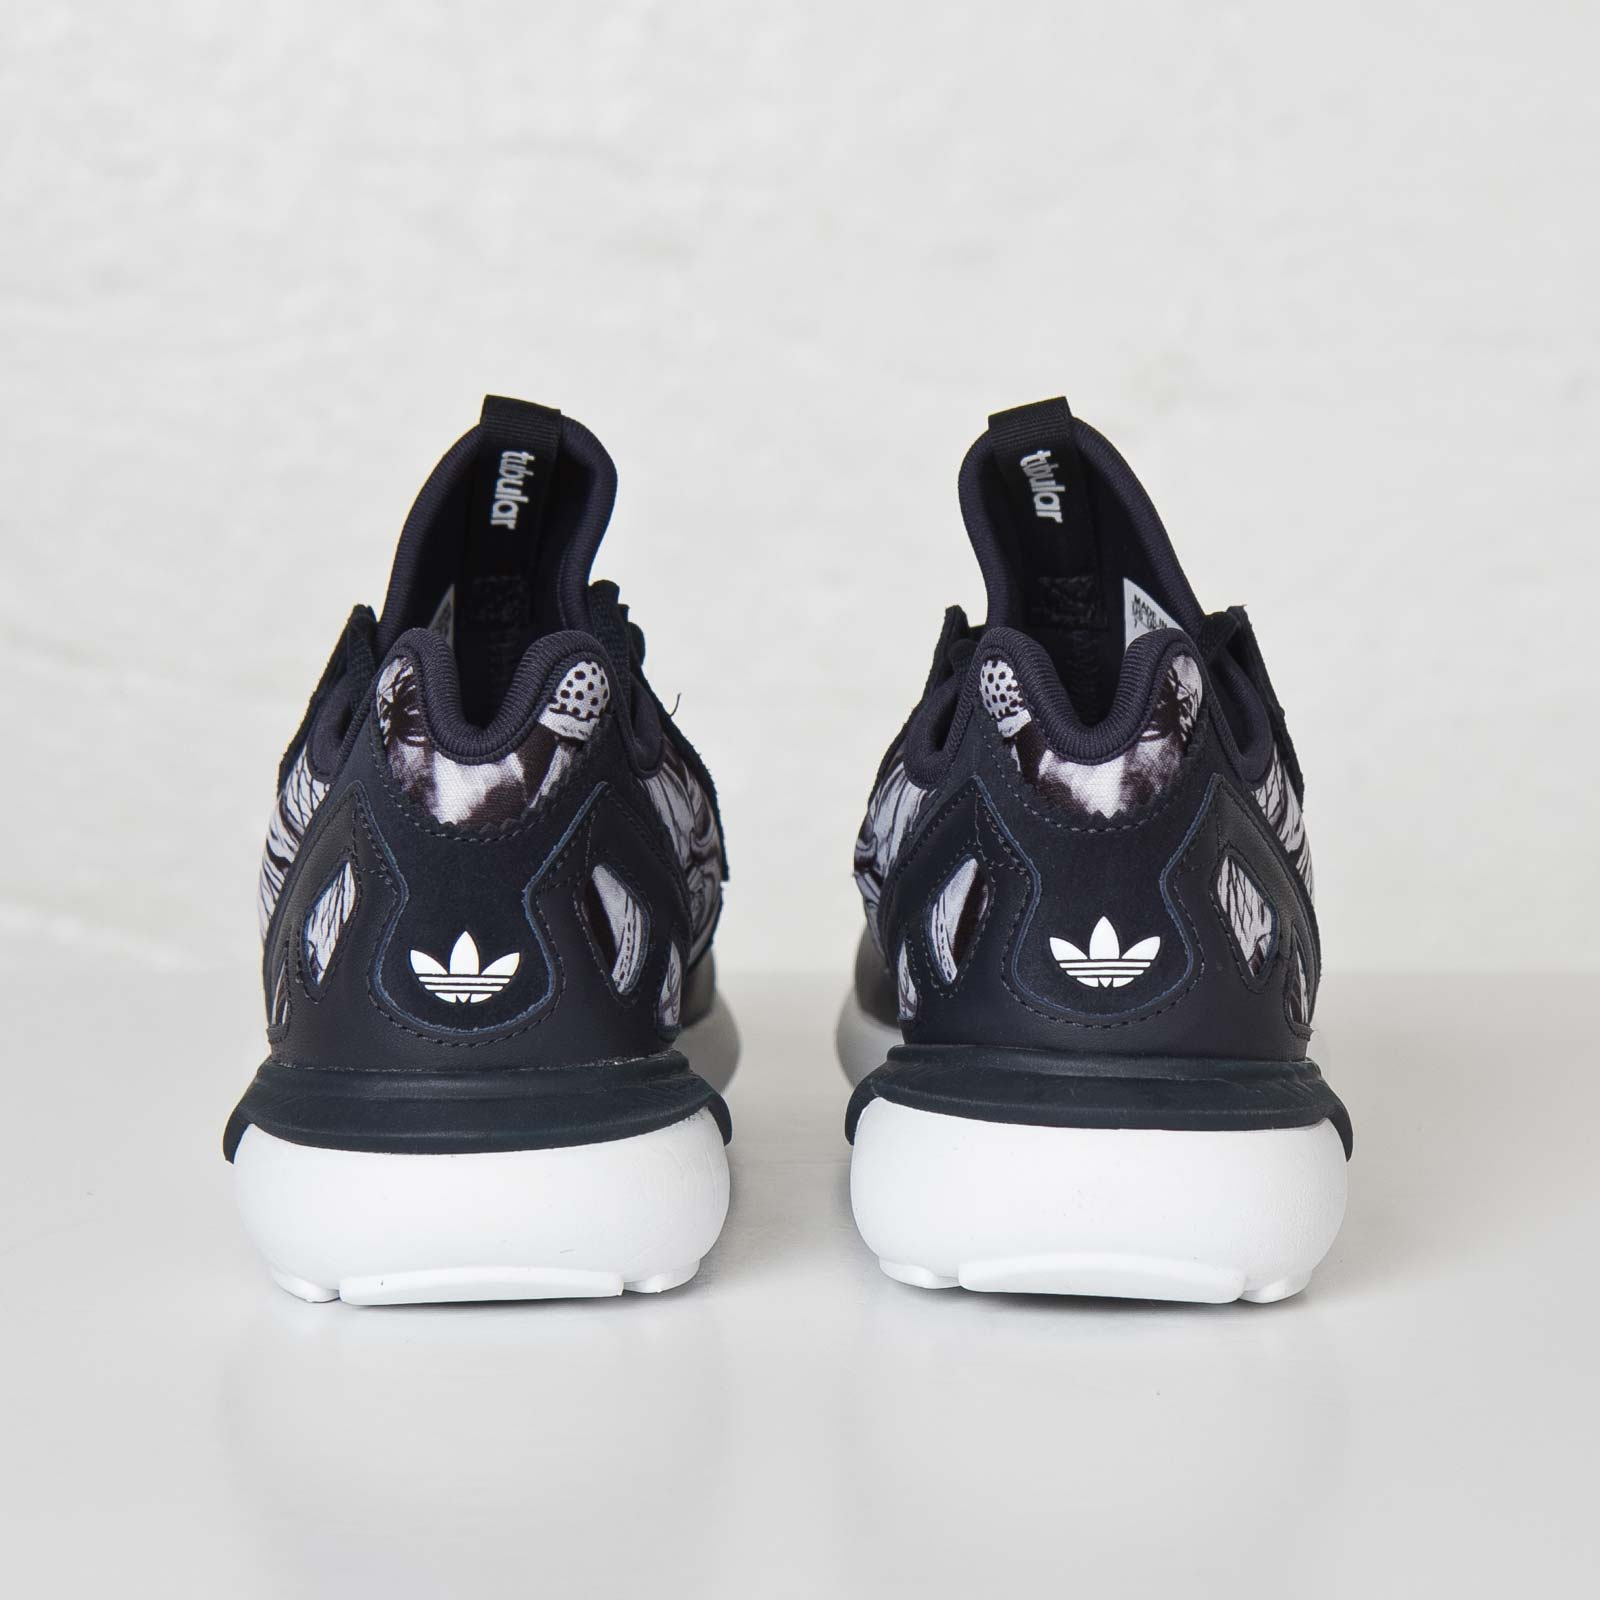 new concept fd195 bc0f5 adidas Tubular Runner W - S81268 - Sneakersnstuff   sneakers   streetwear  online since 1999